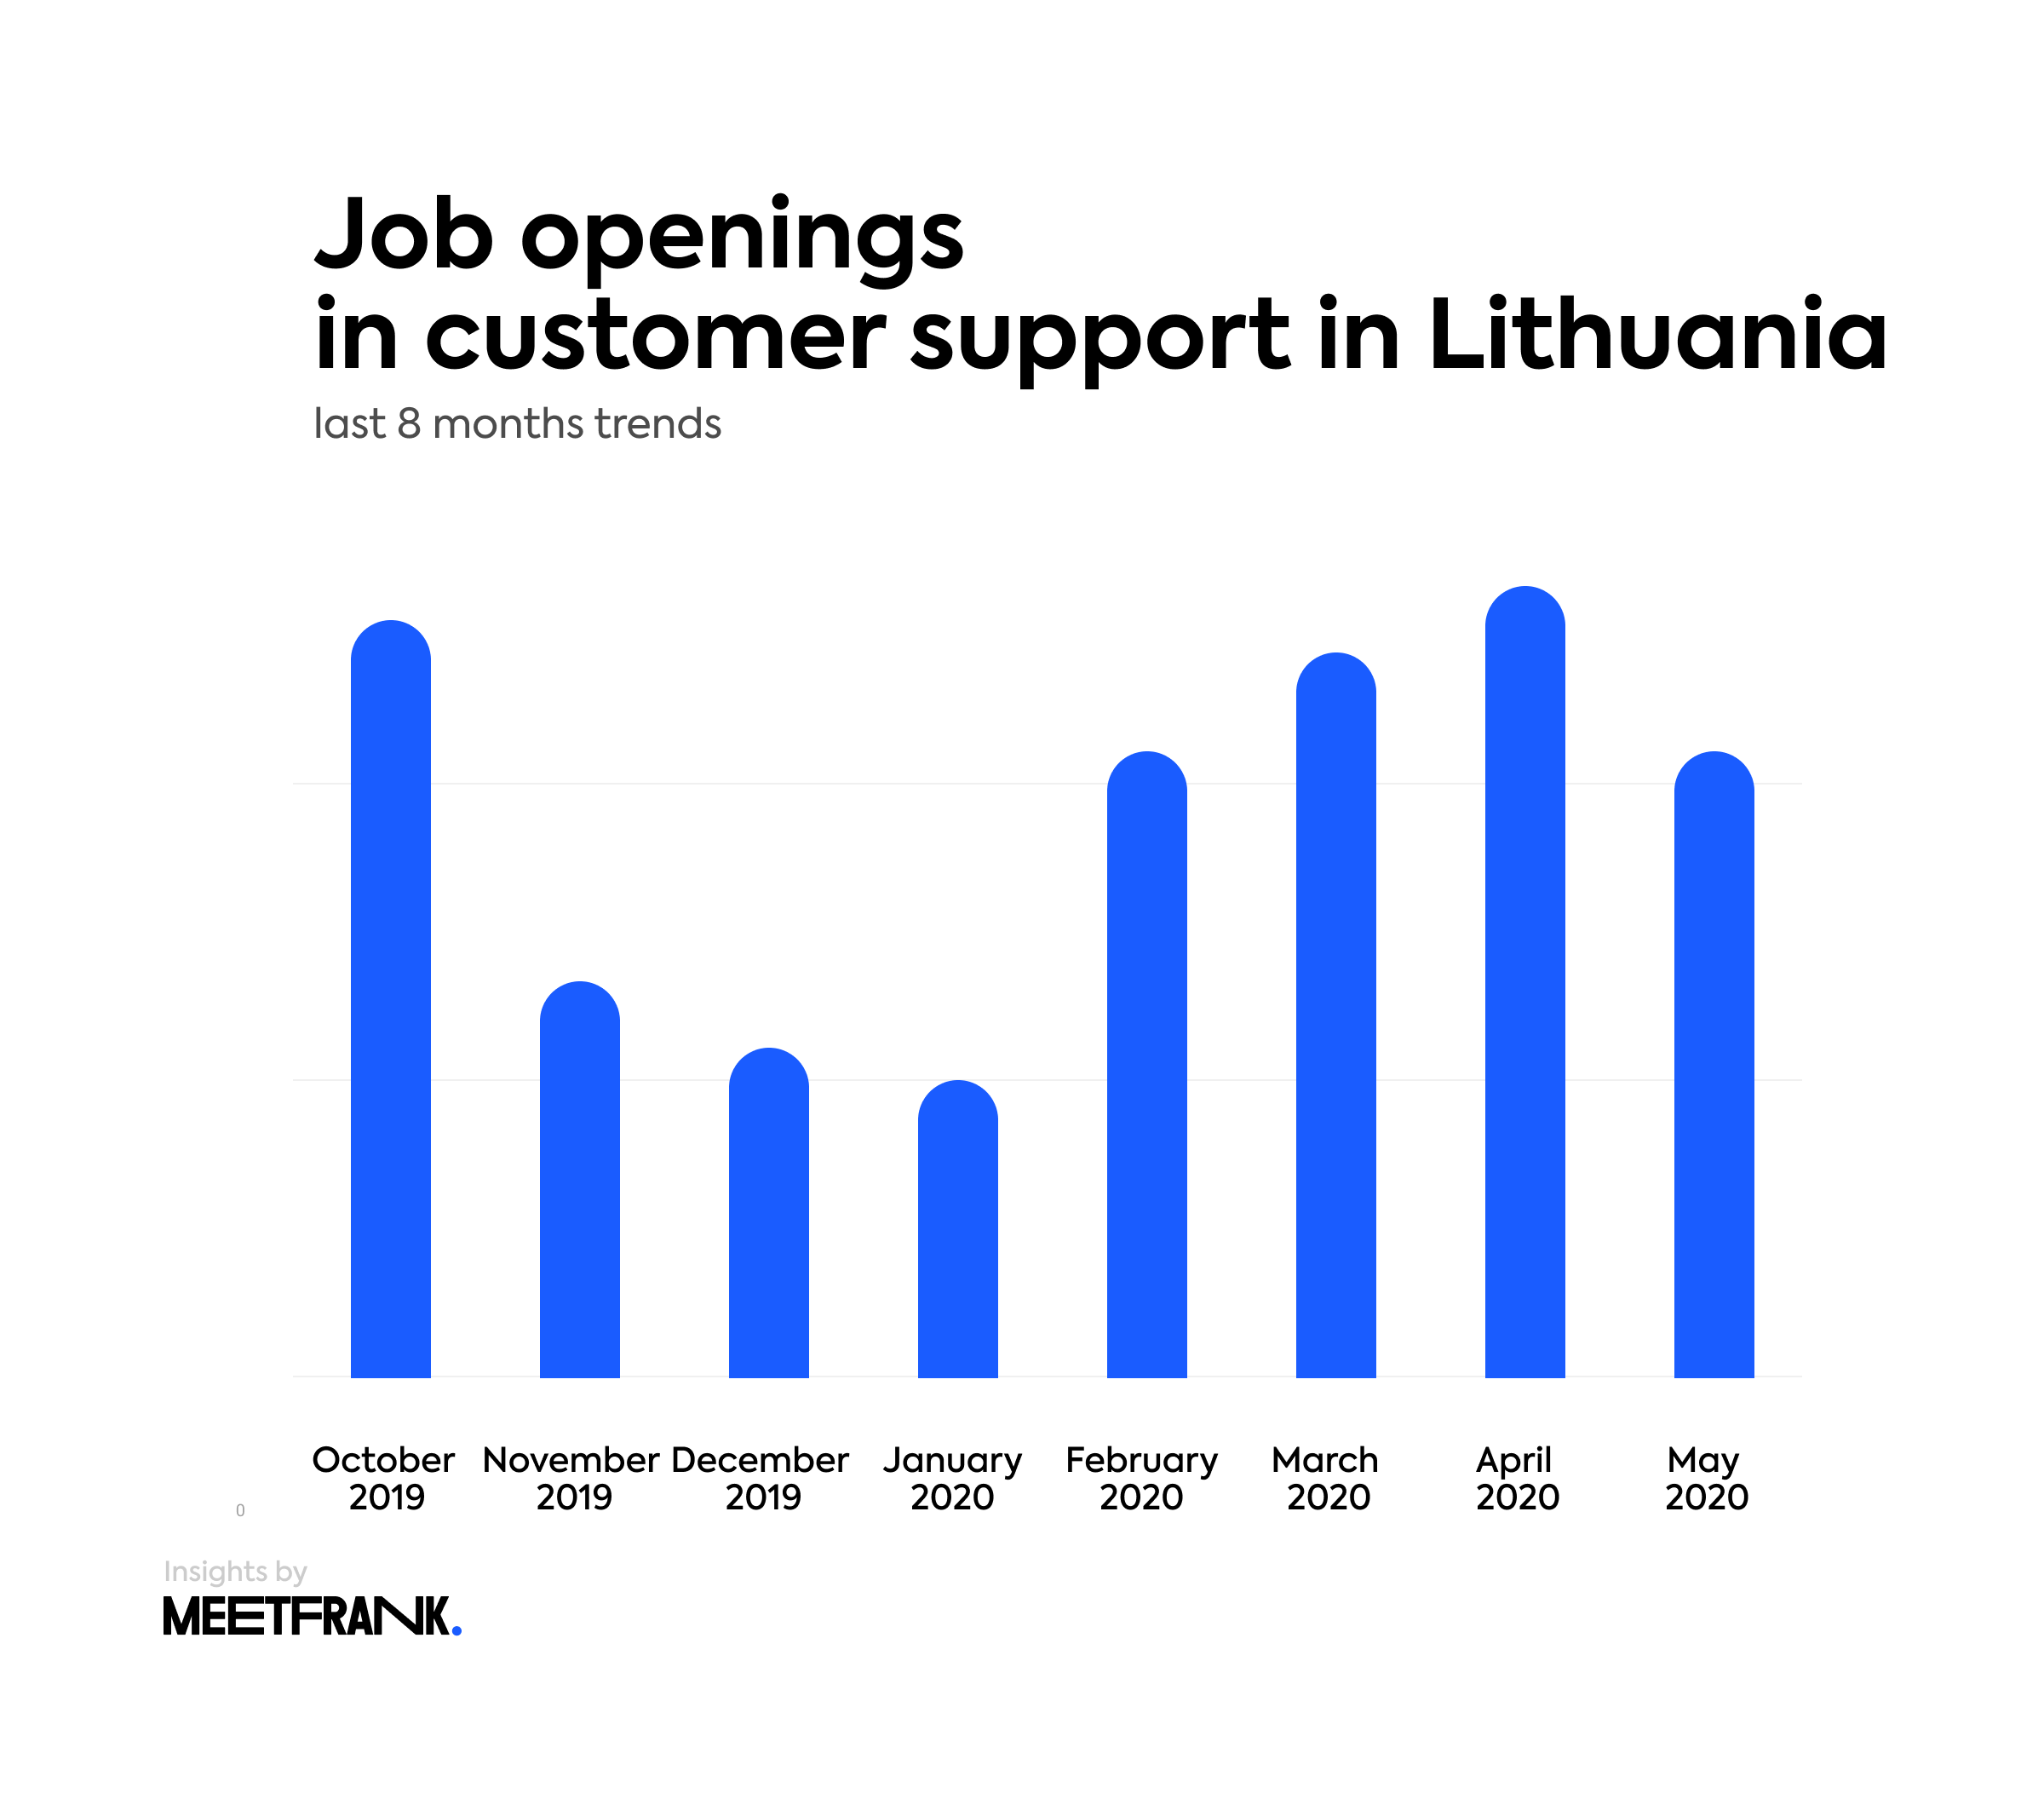 number of job openings in Lithuania